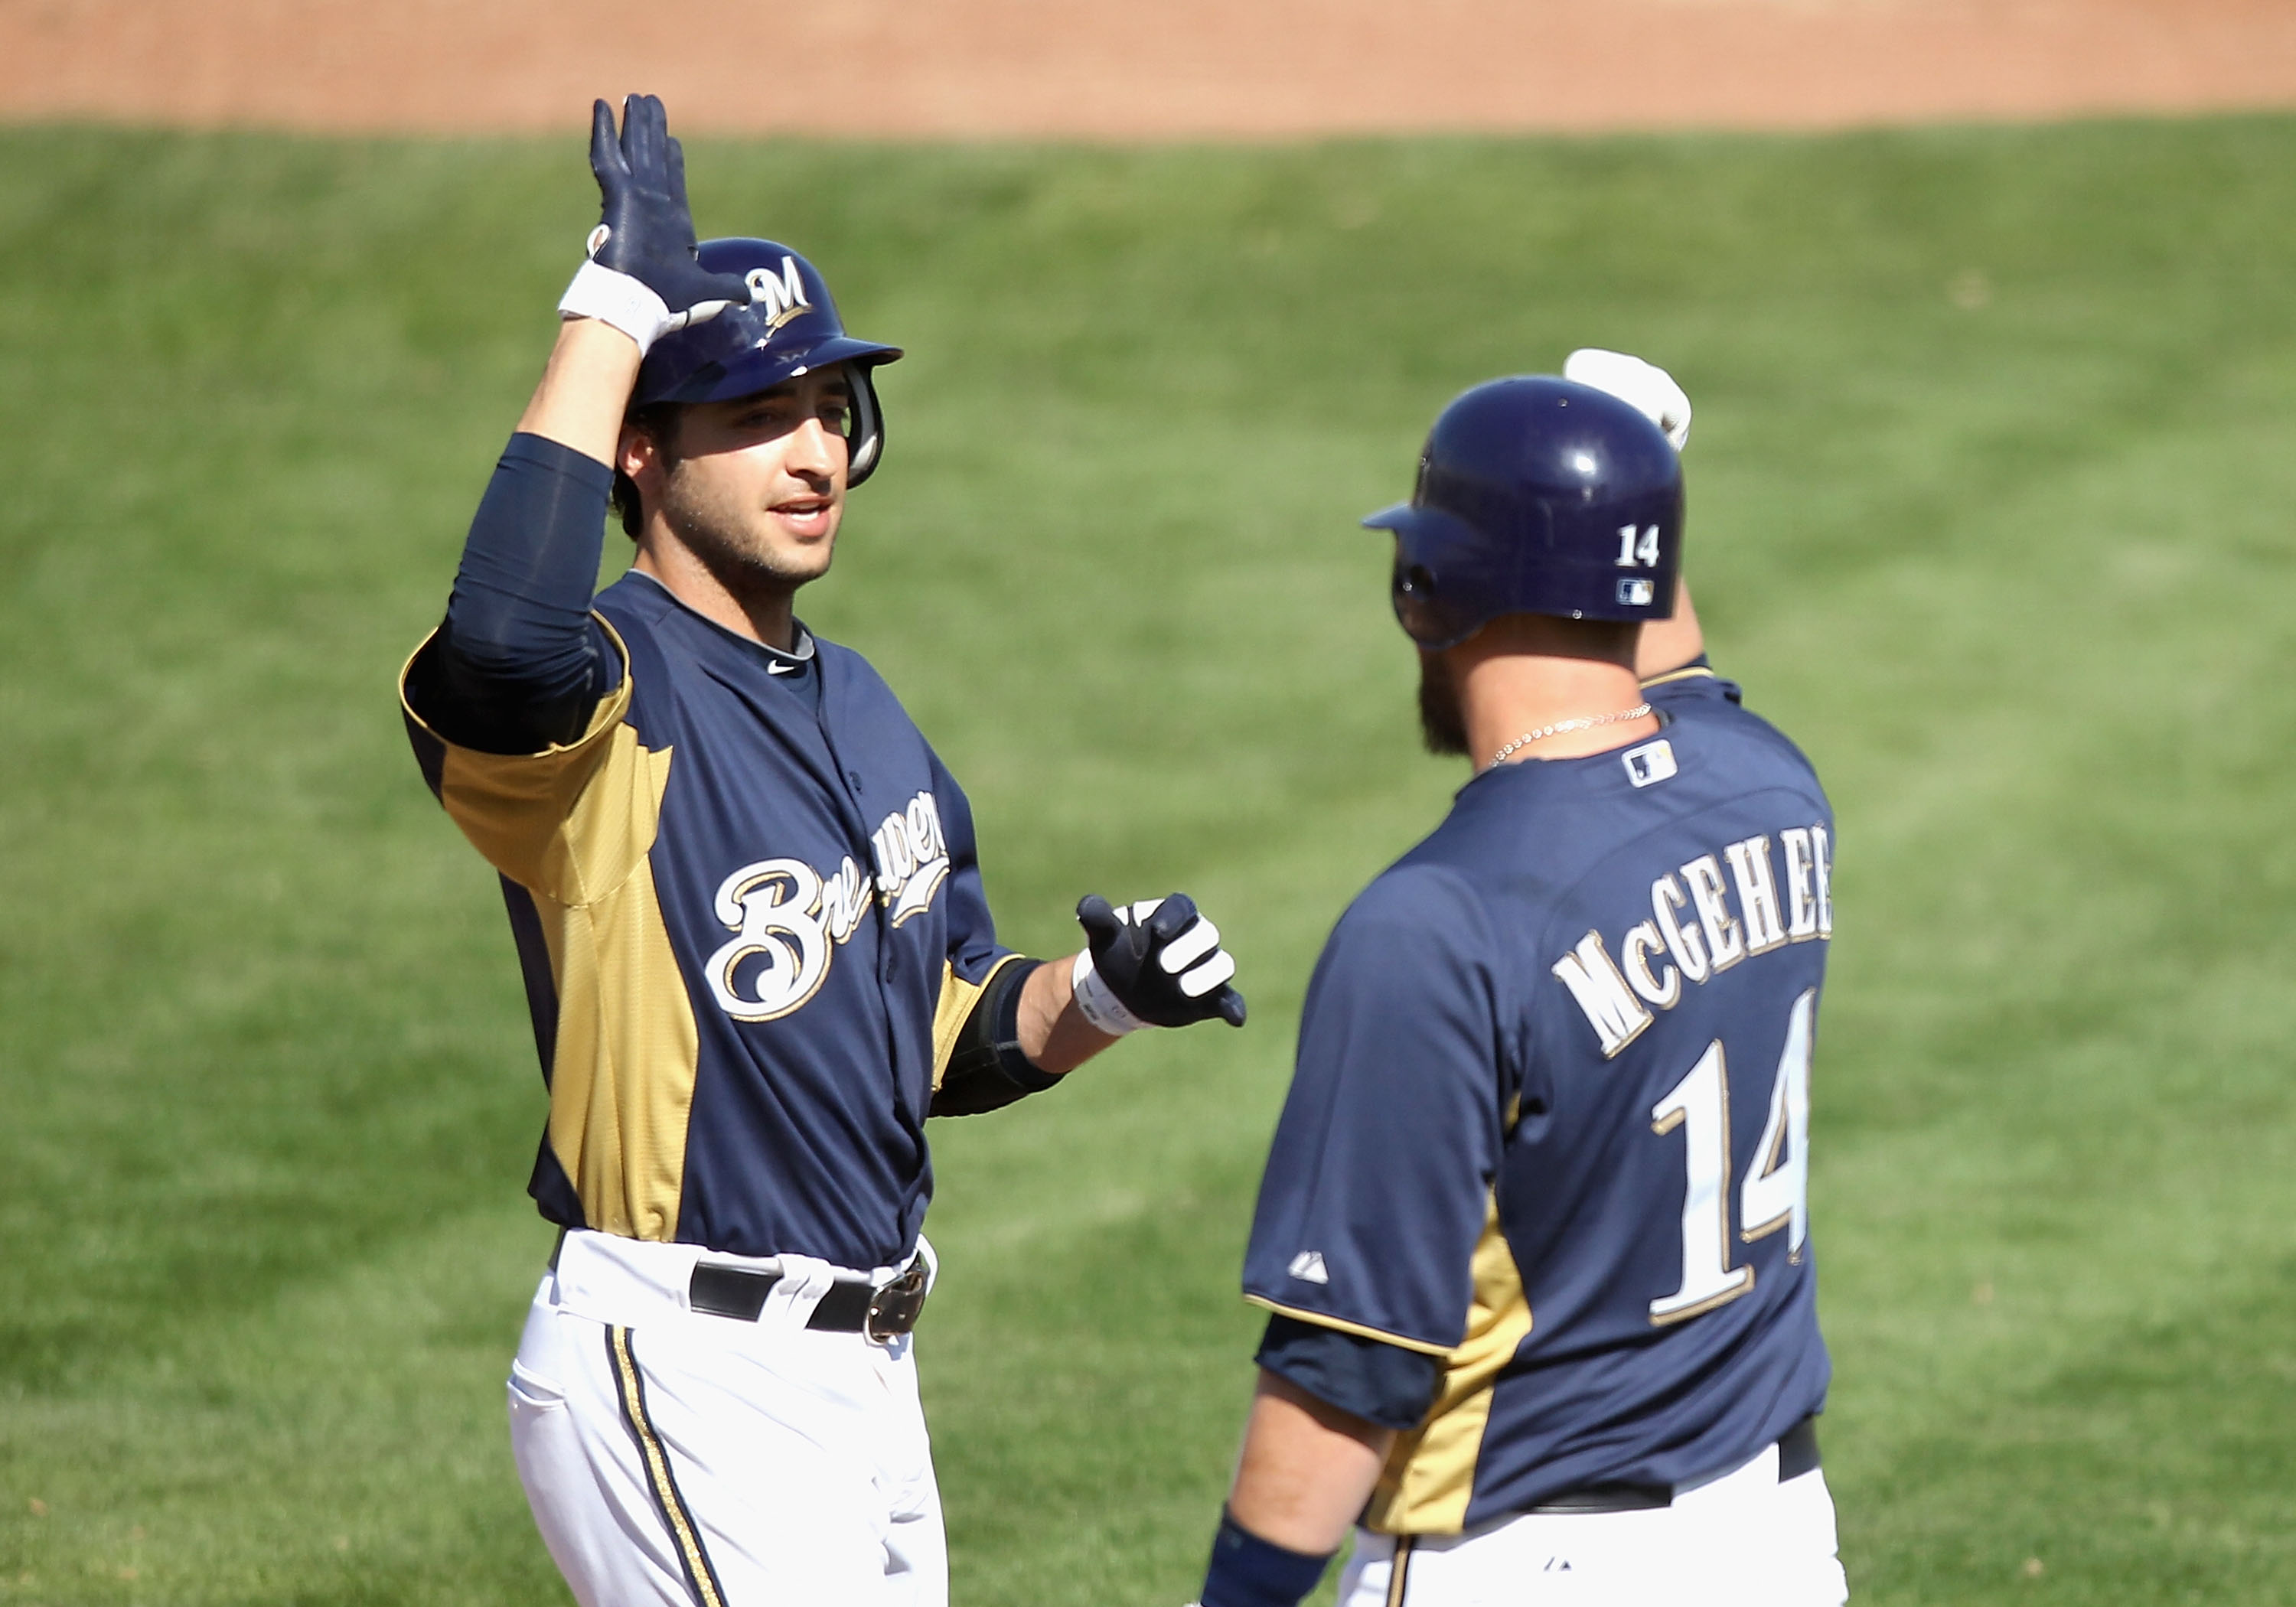 PHOENIX, AZ - MARCH 03:  Ryan Braun #8 of the Milwaukee Brewers high fives teammate Casey McGehee #14 after Braun hit a 2 run home run against the Oakland Athletics during the third inning of the spring training game at Maryvale Baseball Park on March 3,